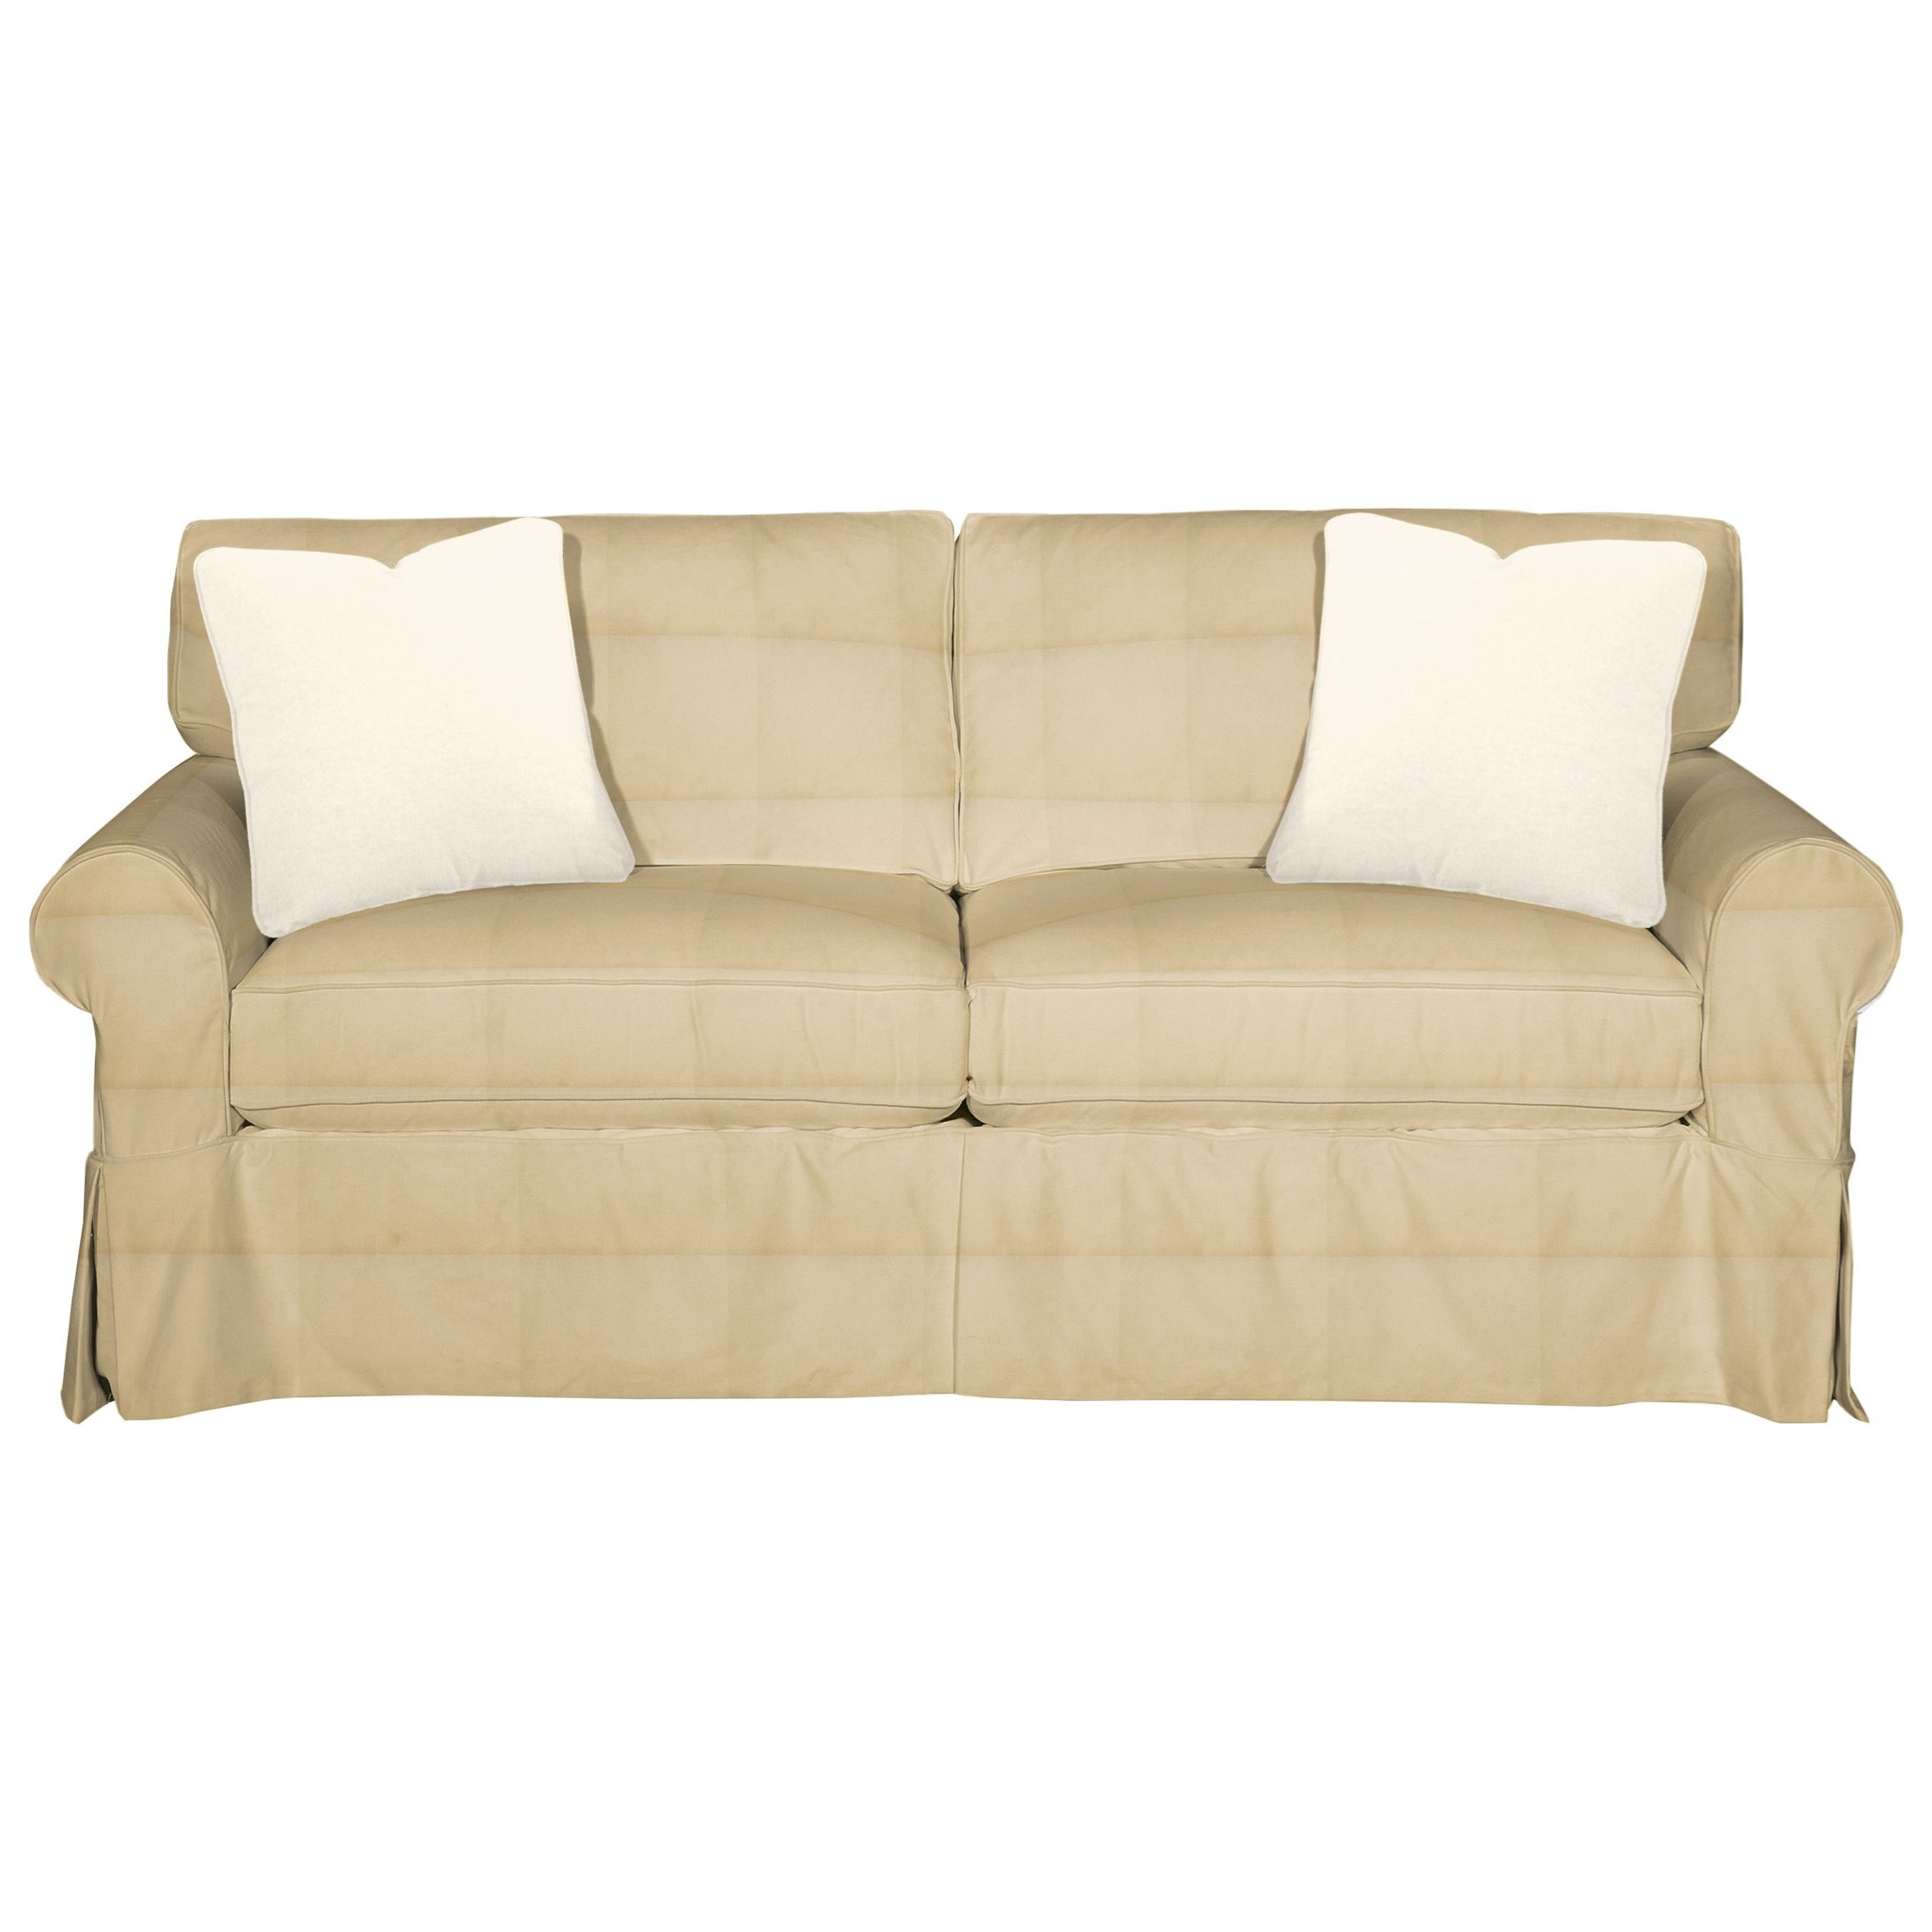 9228 Sleeper Sofa w/ Innerspring Mattress by Craftmaster at Bullard Furniture